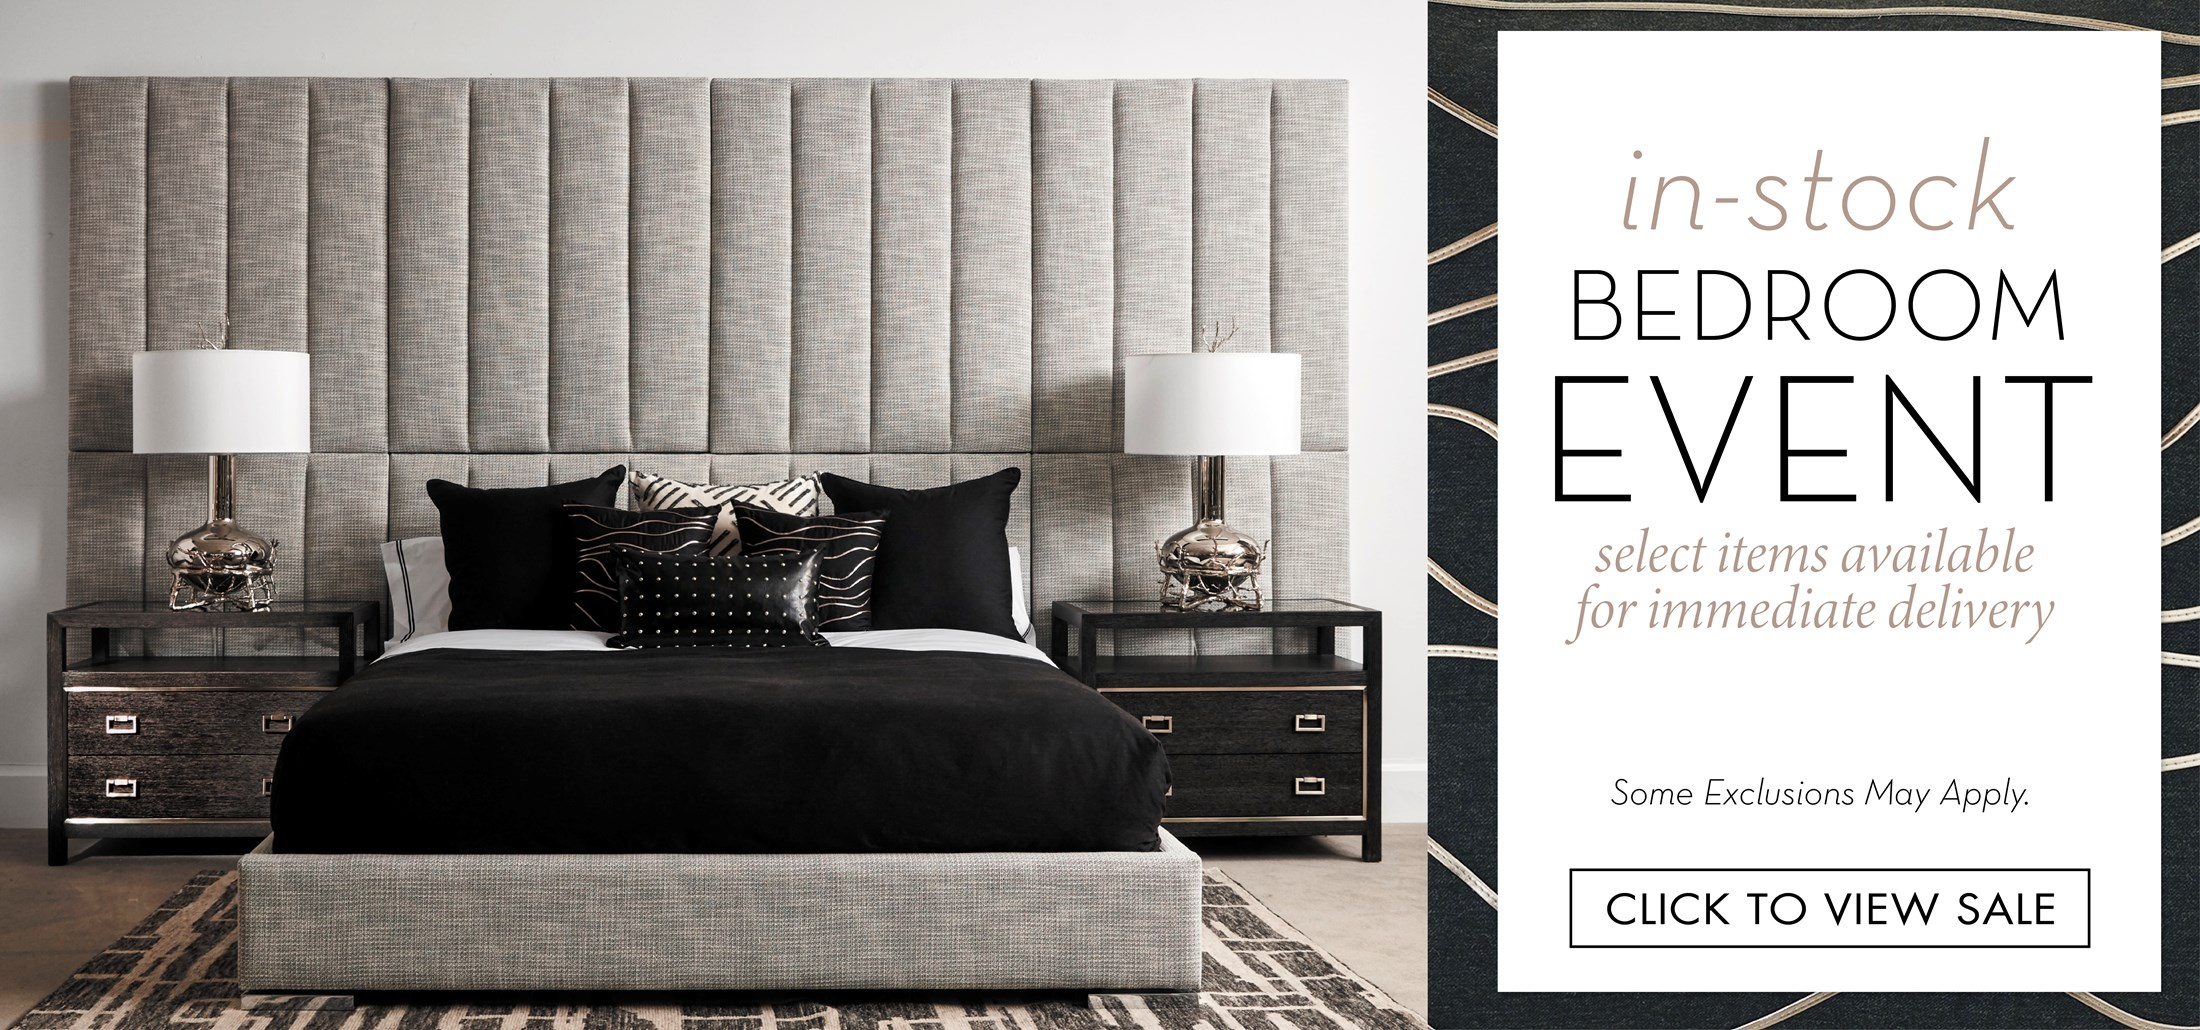 Image of the Phoebe King Bed with Dora Nightstands. Text: In-Stock Bedroom Event. Select items available for immediate delivery. Some exclusions may apply. Click to view sale. Links to In-Stock Design Event.